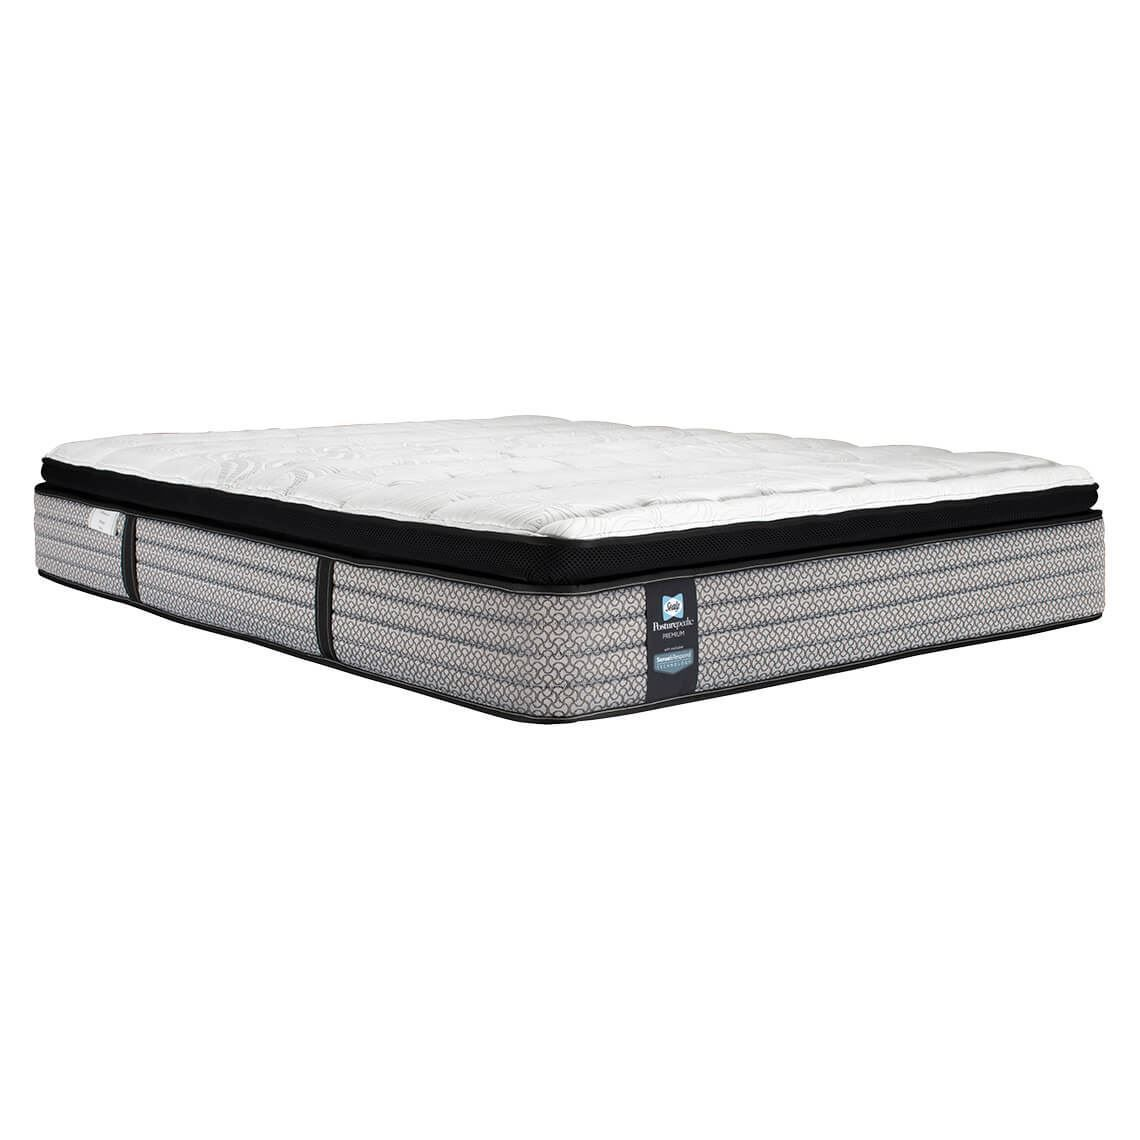 Sealy Posturepedic Margot Medium Super King Mattress With Images Sealy Posturepedic Single Mattress Posturepedic